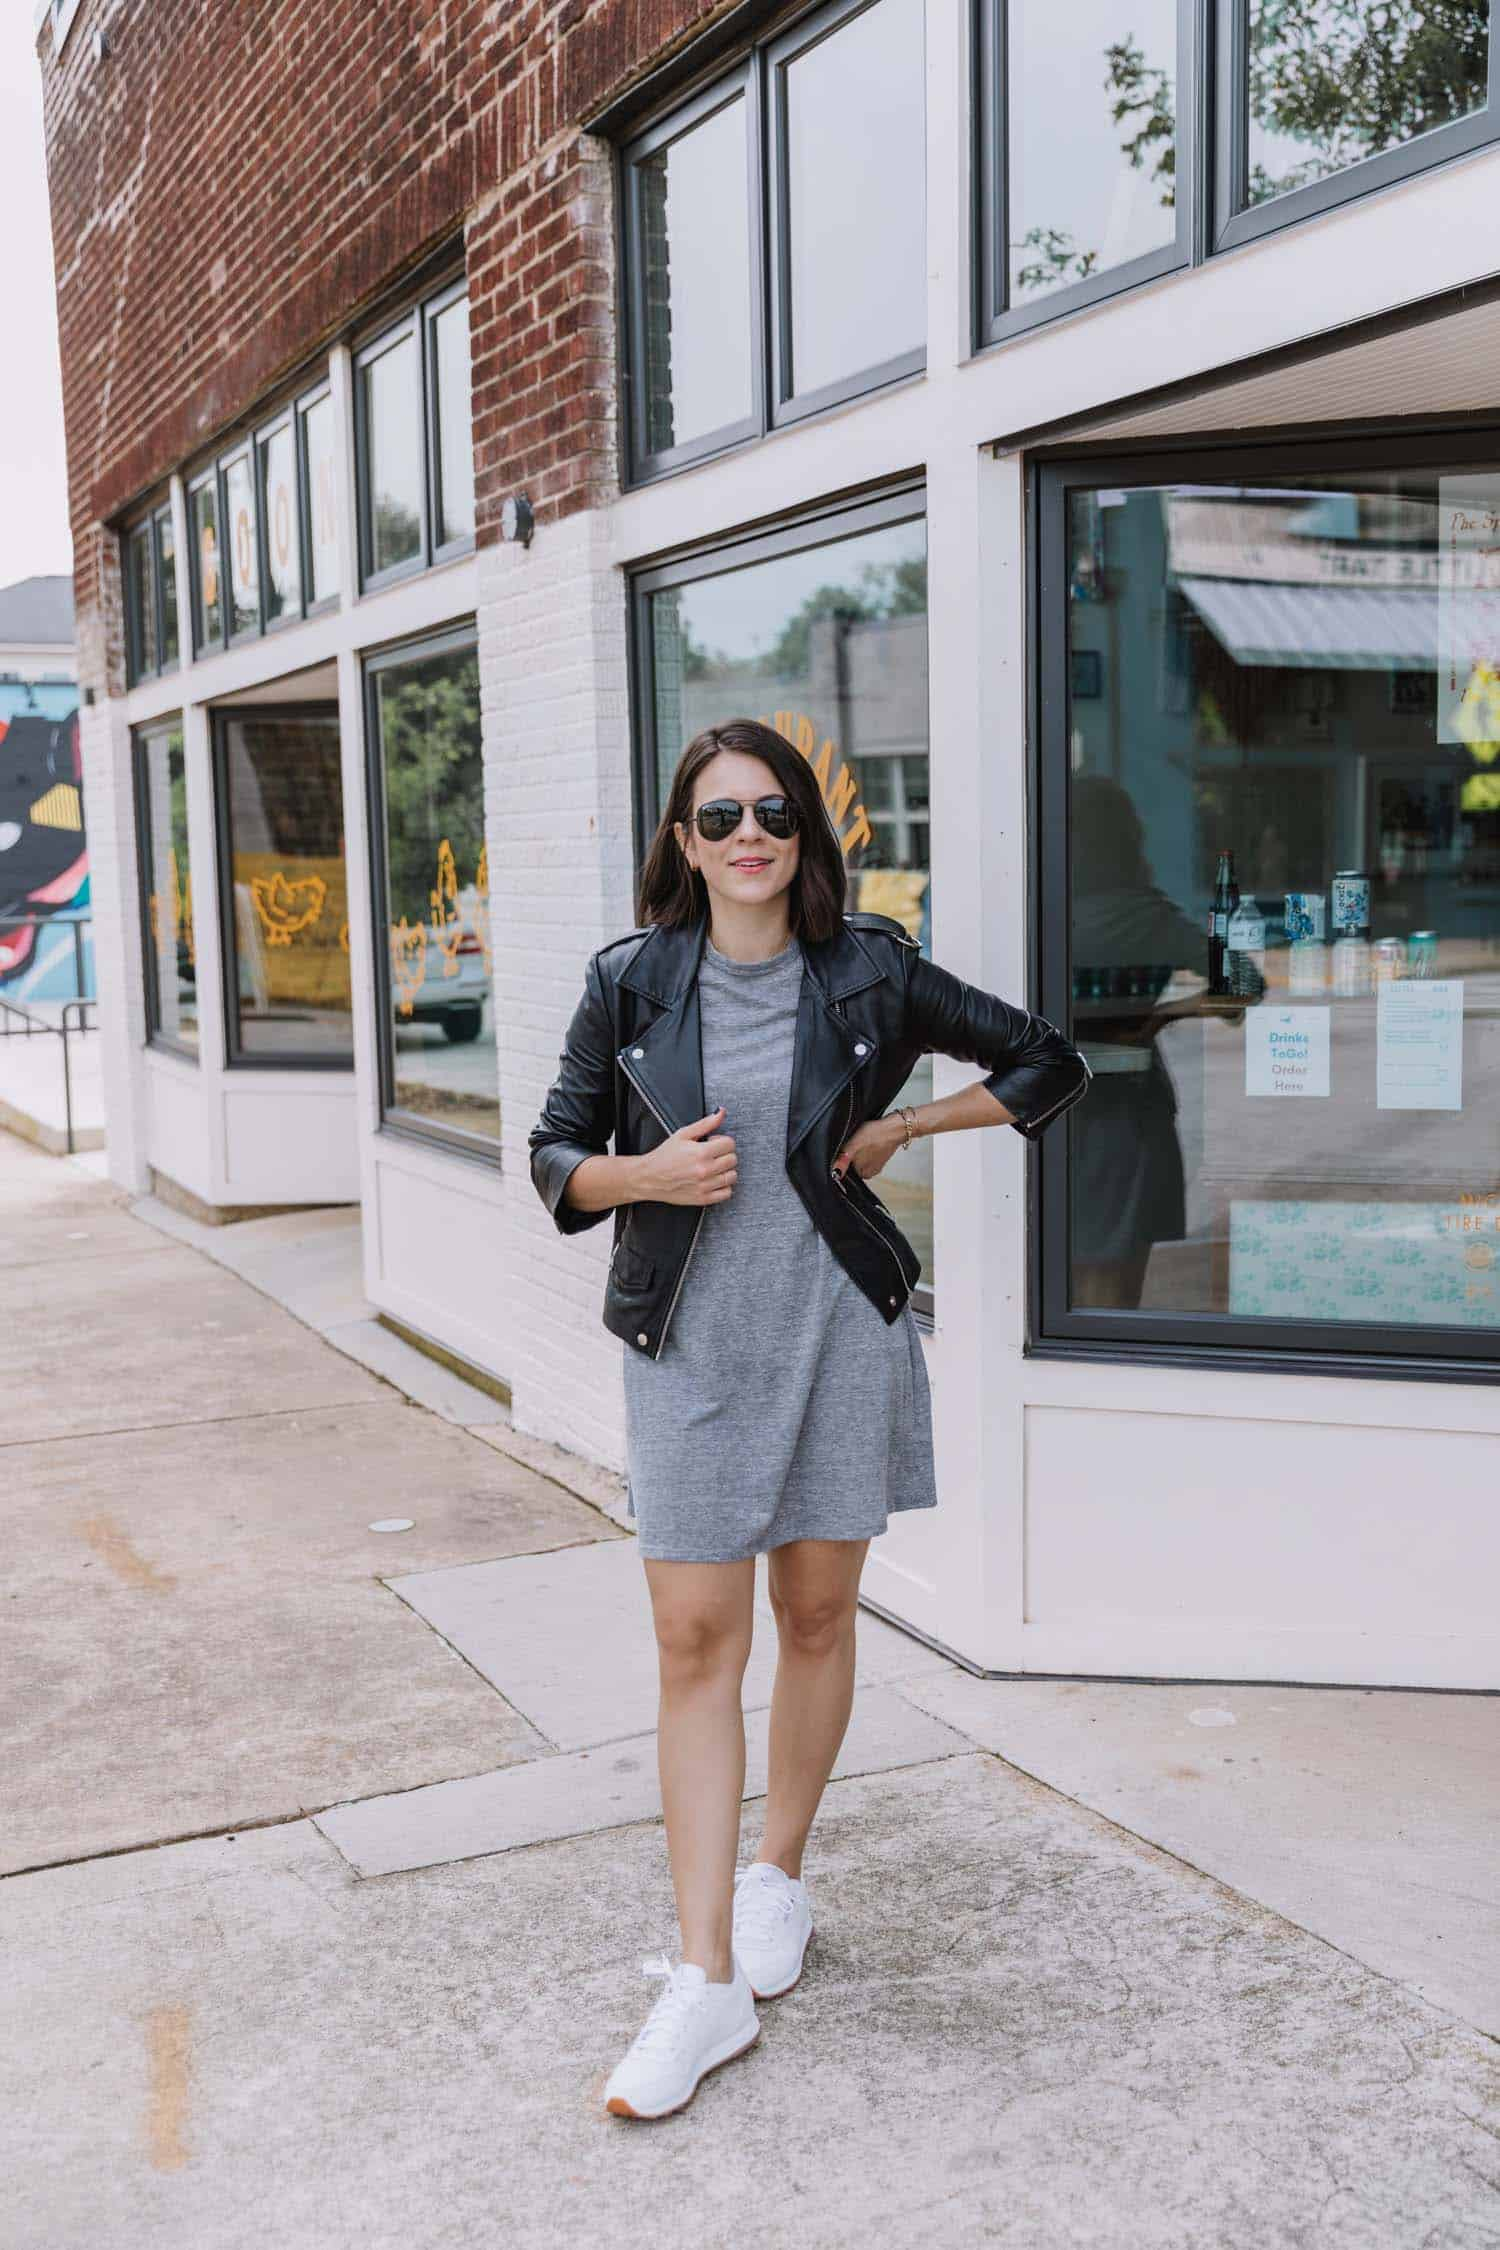 Jessica Camerata styles a t-shirt dress with a leather jacket